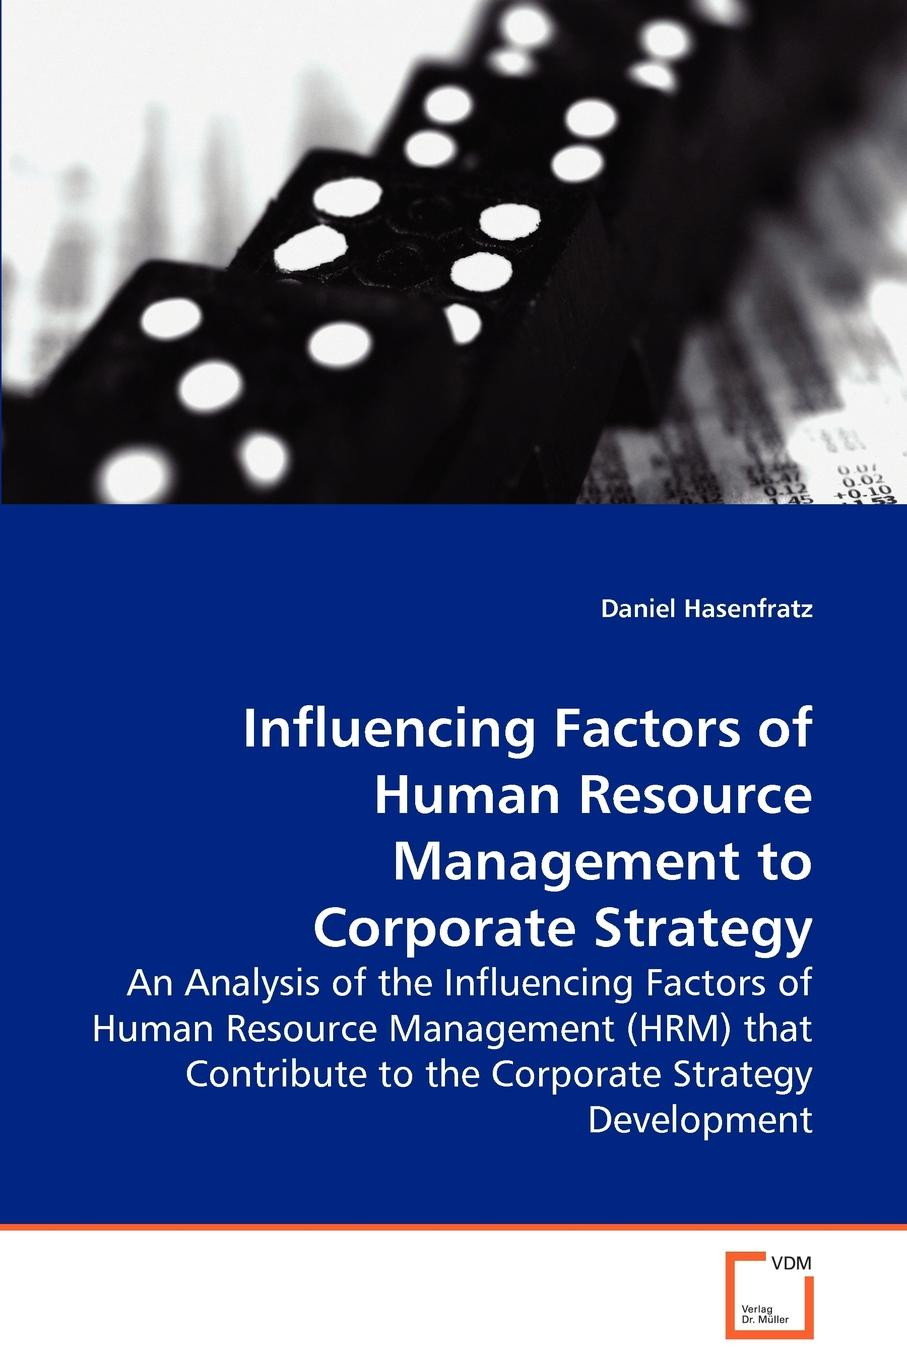 Daniel Hasenfratz Influencing Factors of Human Resource Management to Corporate Strategy недорго, оригинальная цена